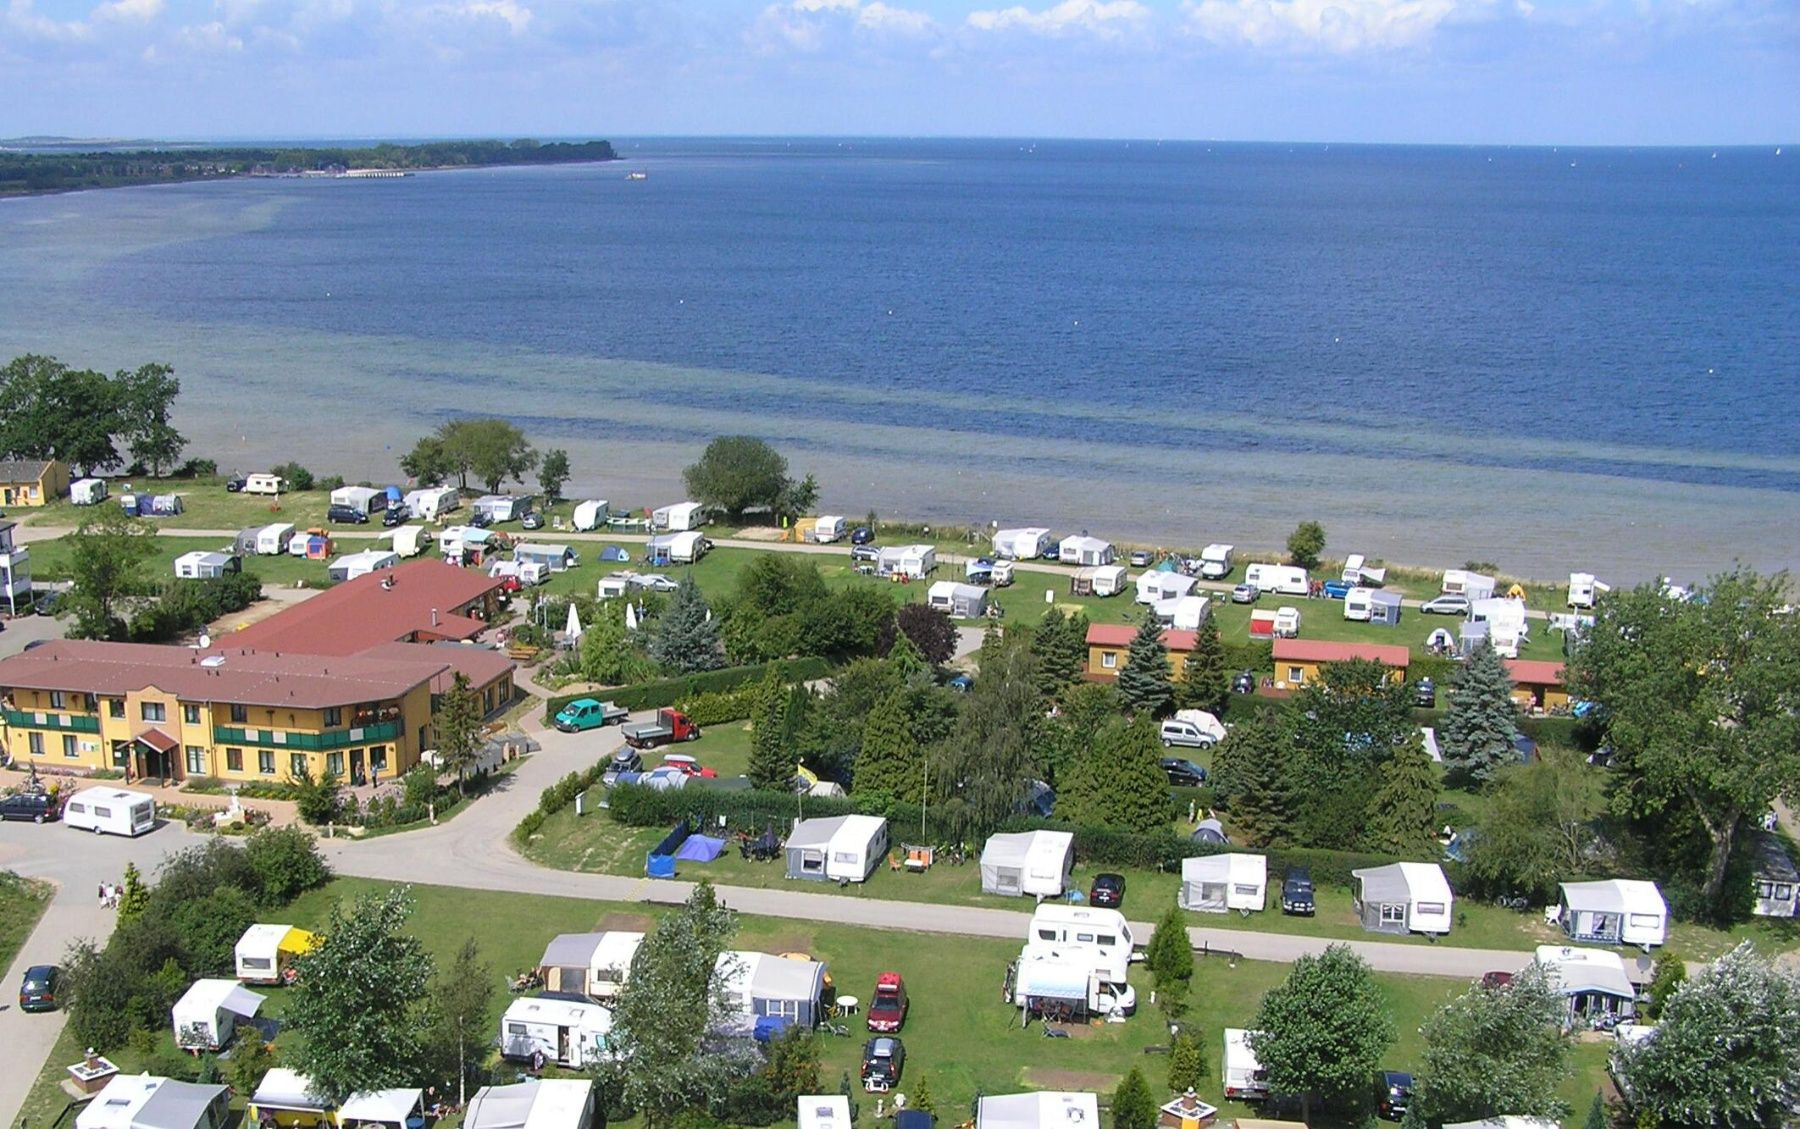 Ostseecamping Ferienpark Zierow Camping Ostsee